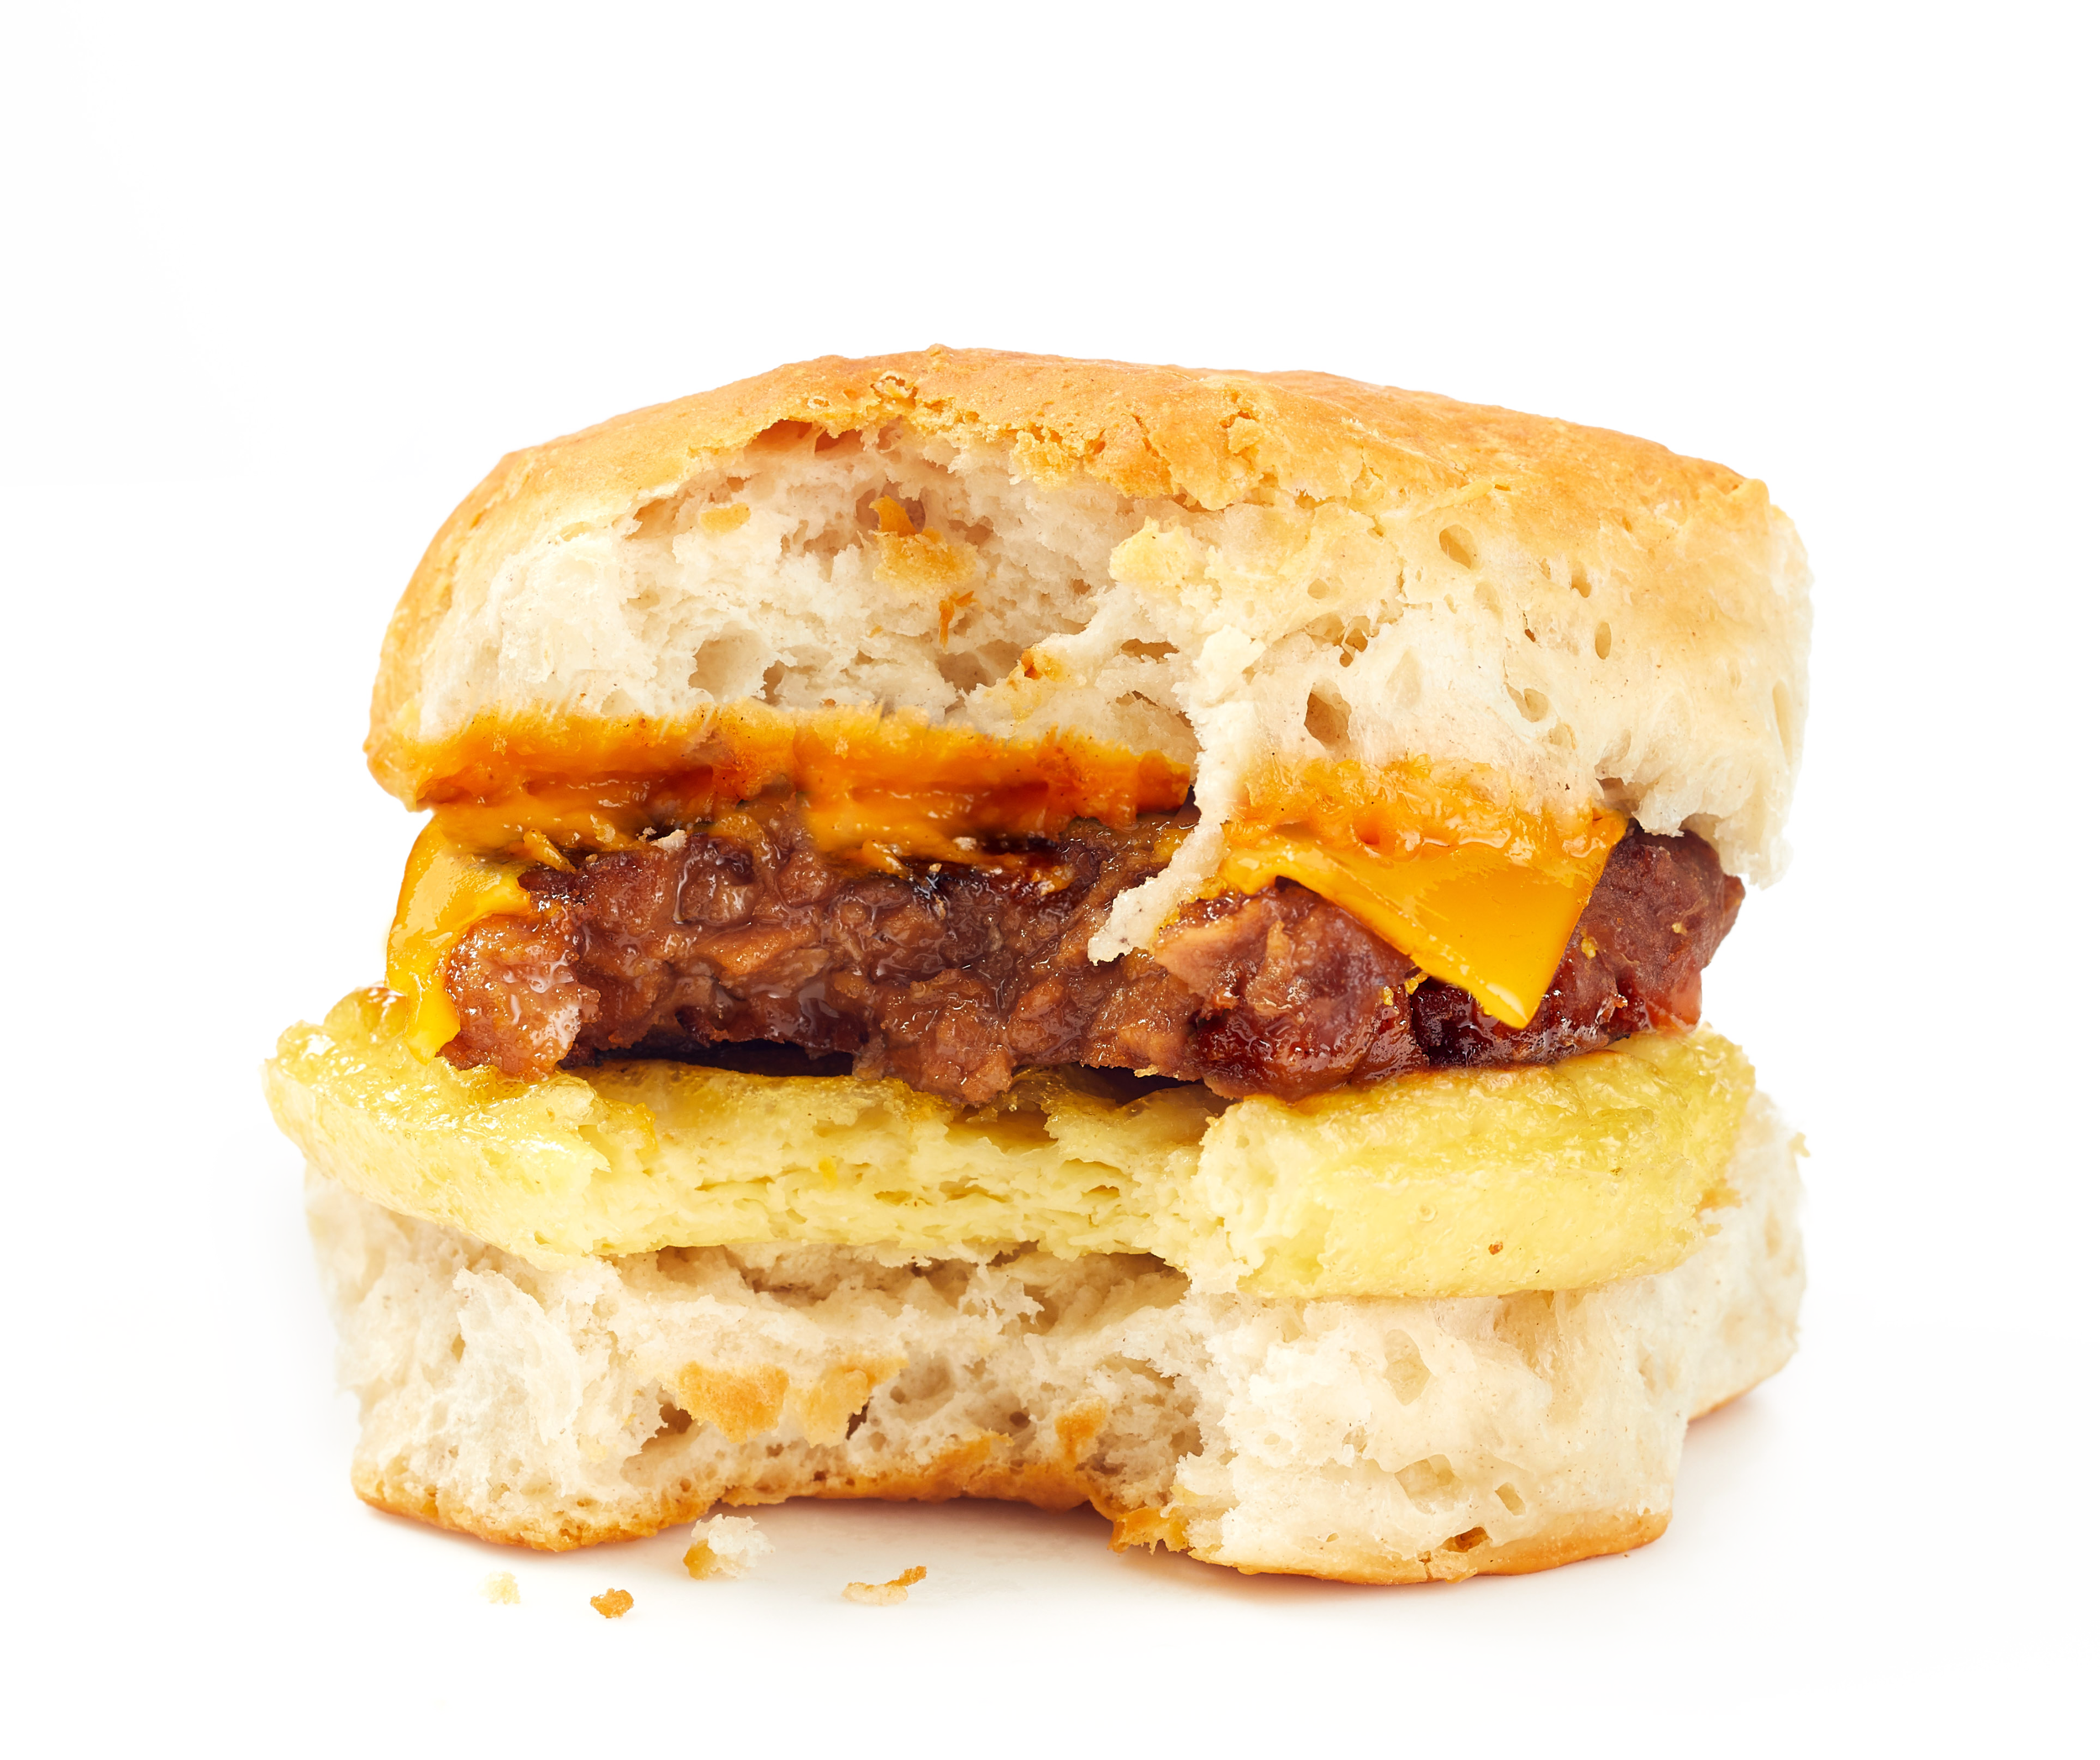 JUST Egg patty_3.png